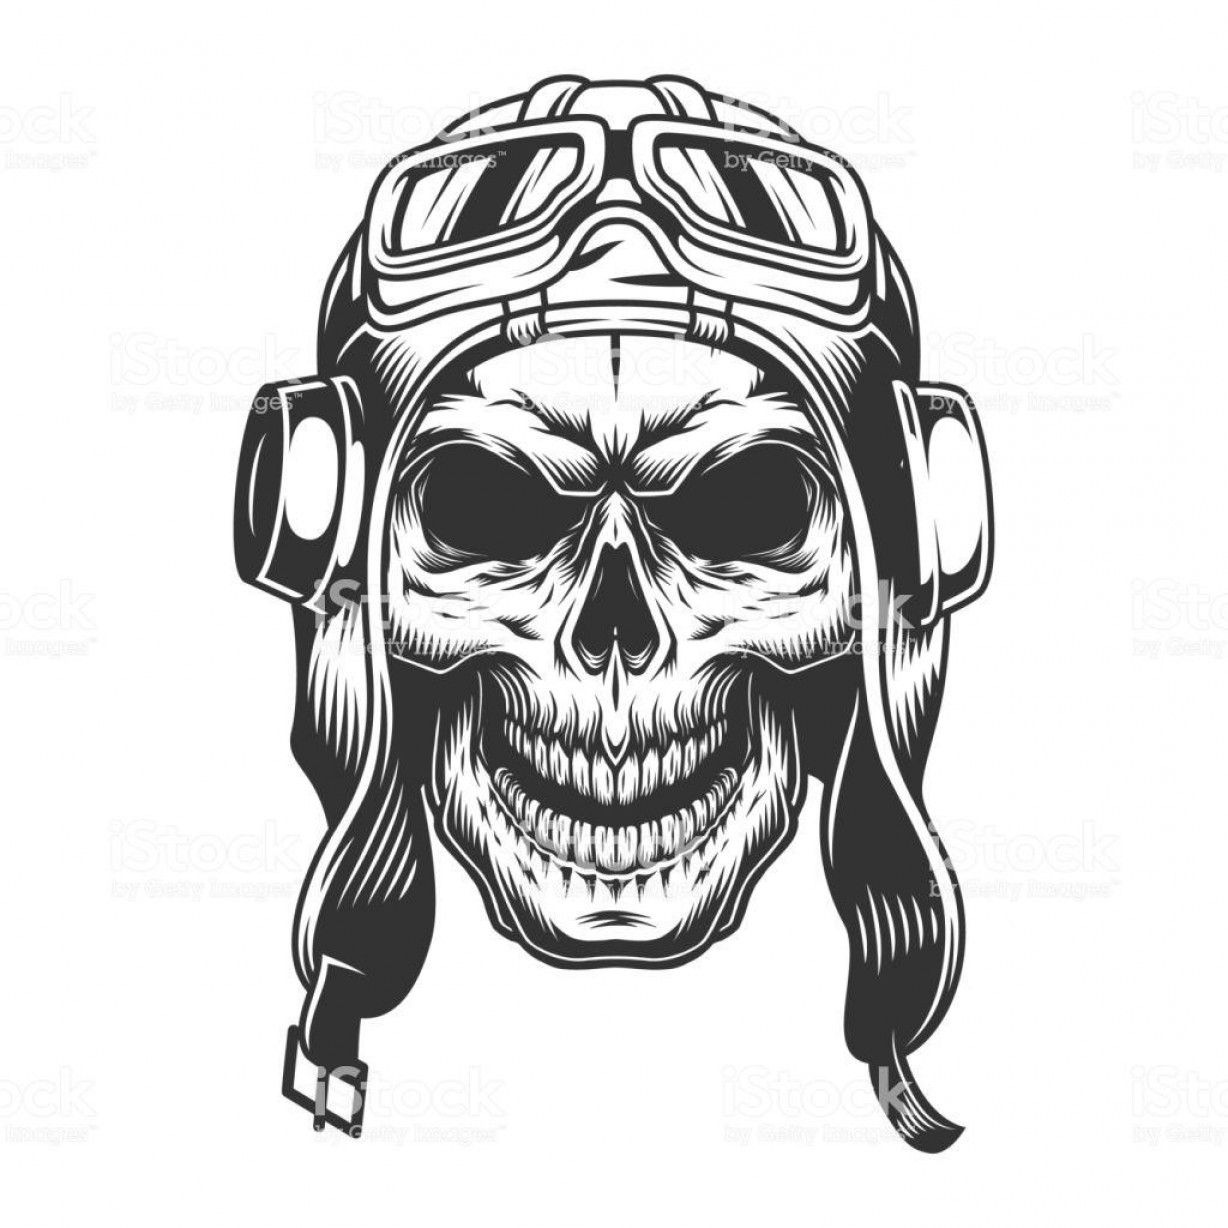 Fighter Helmet Vectors: Top Pilot Helmet Clip Art Images